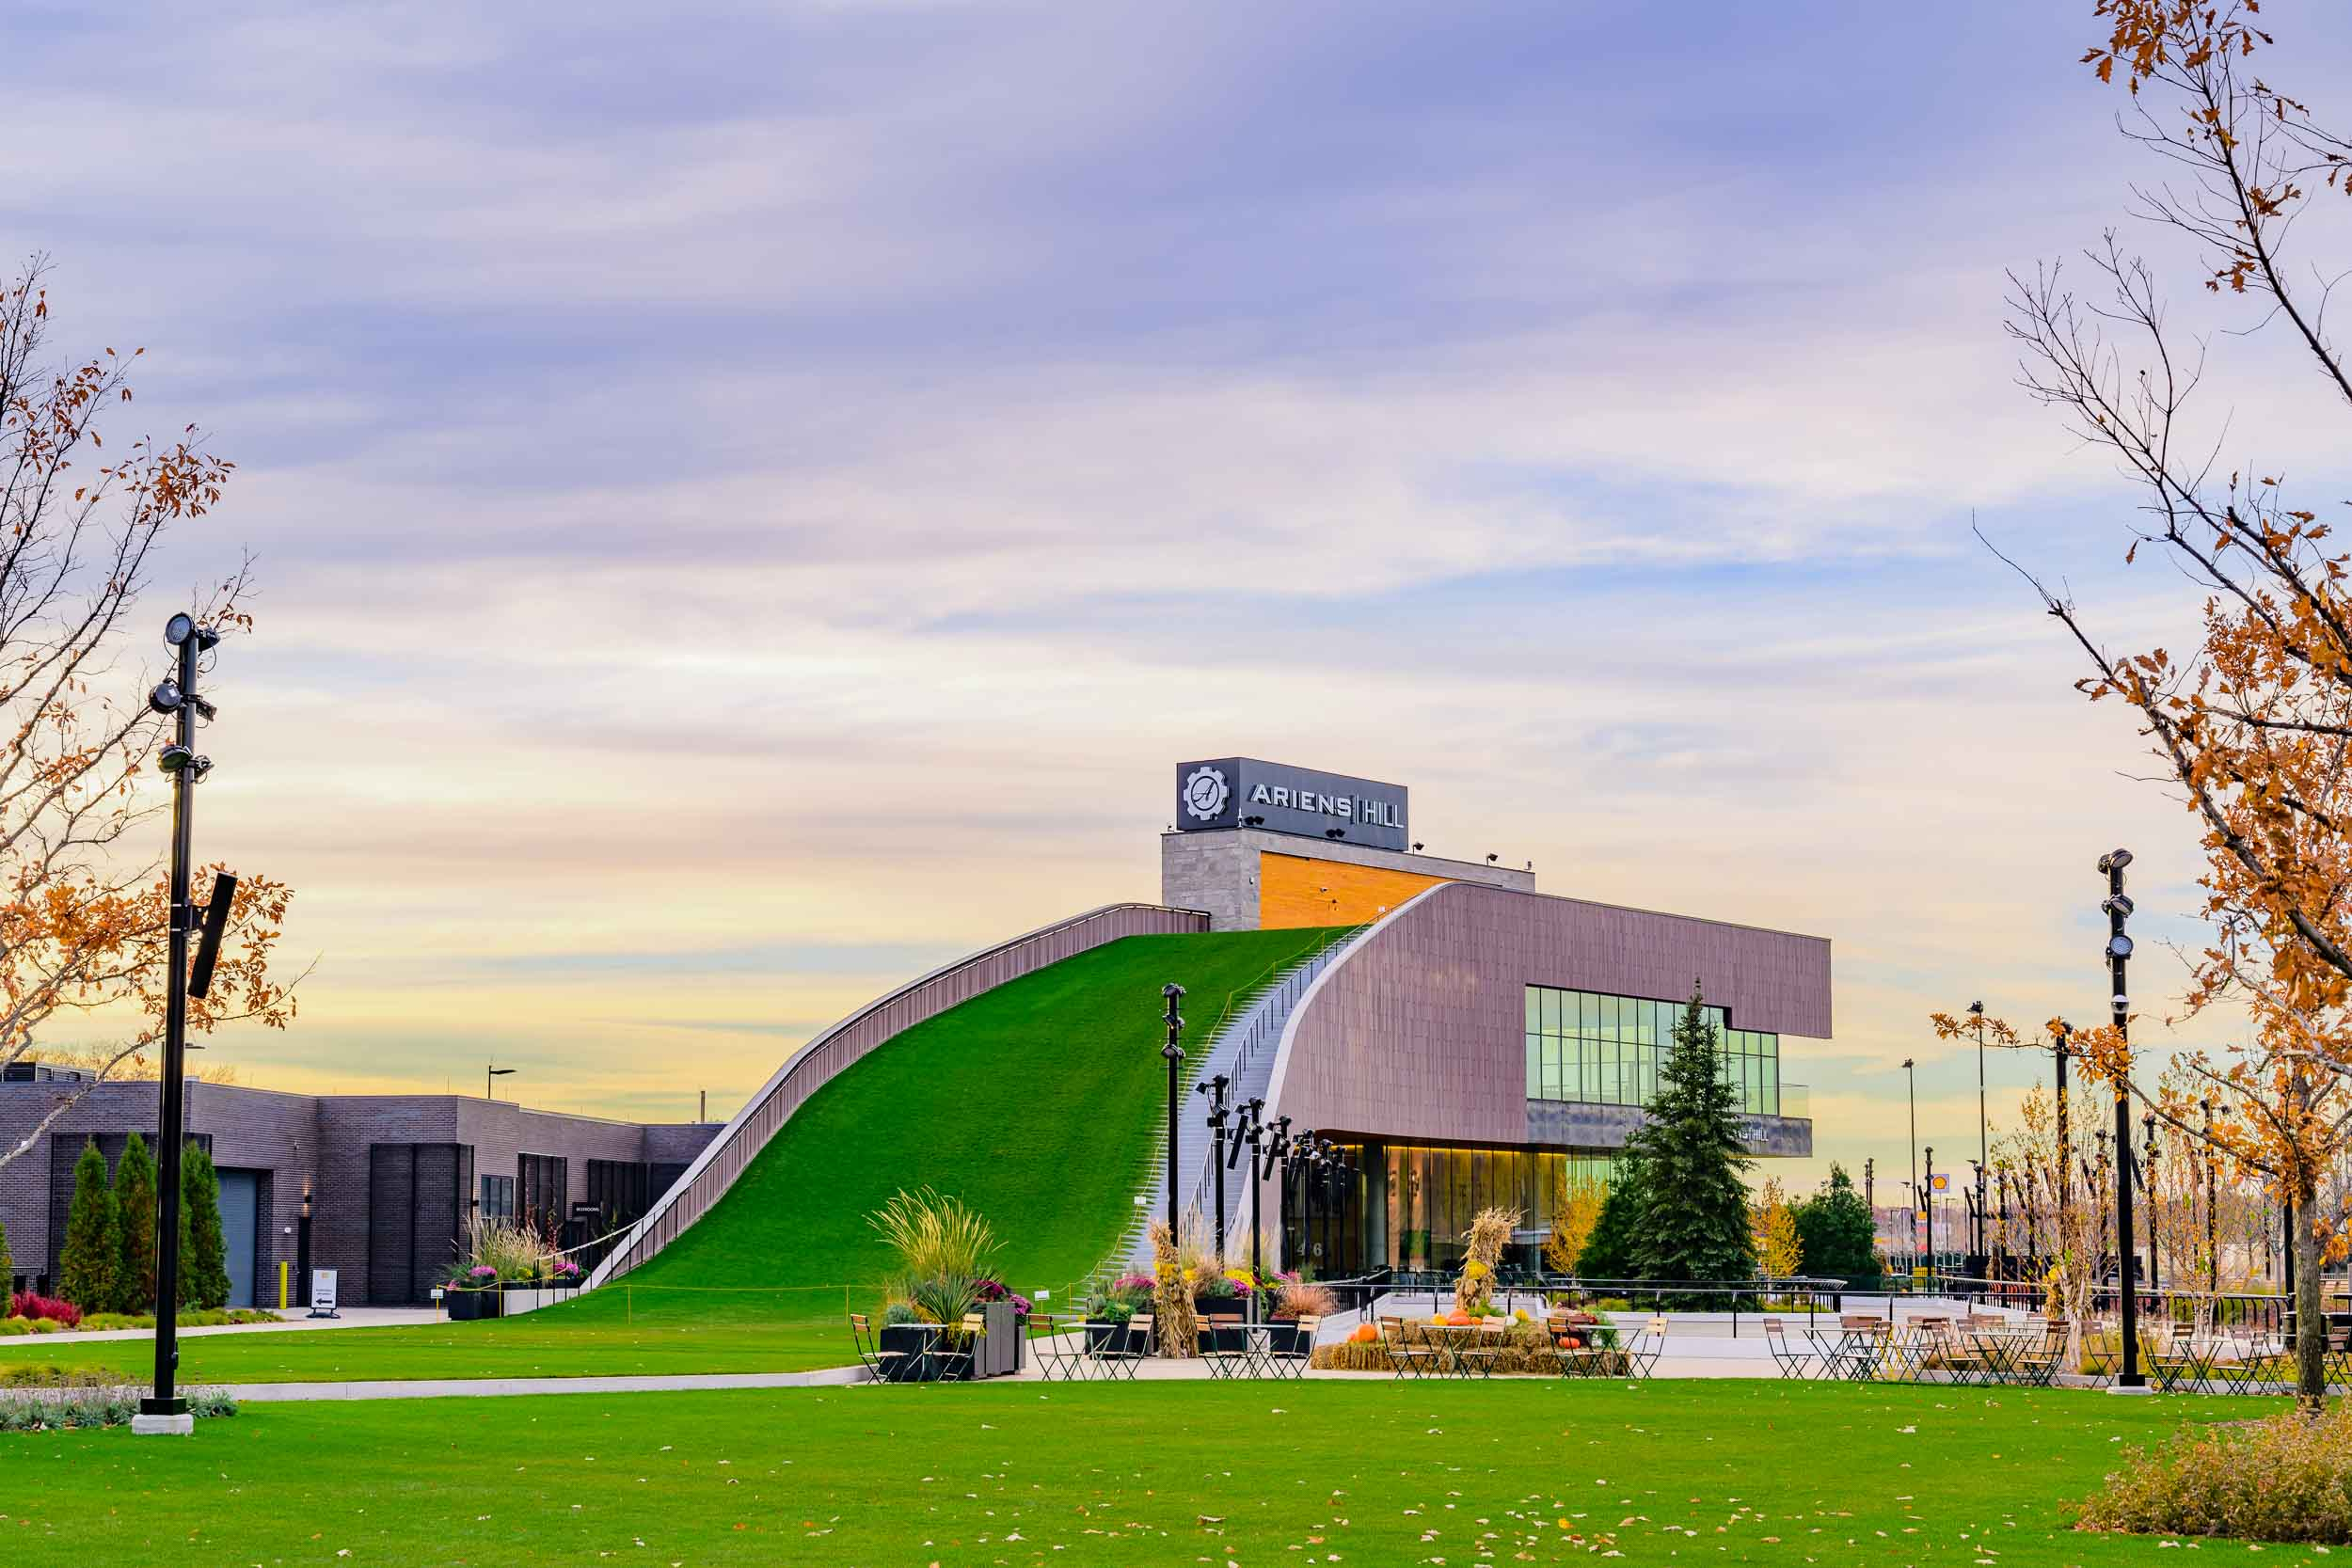 Arien's Hill  in the  Titletown District  in Green Bay